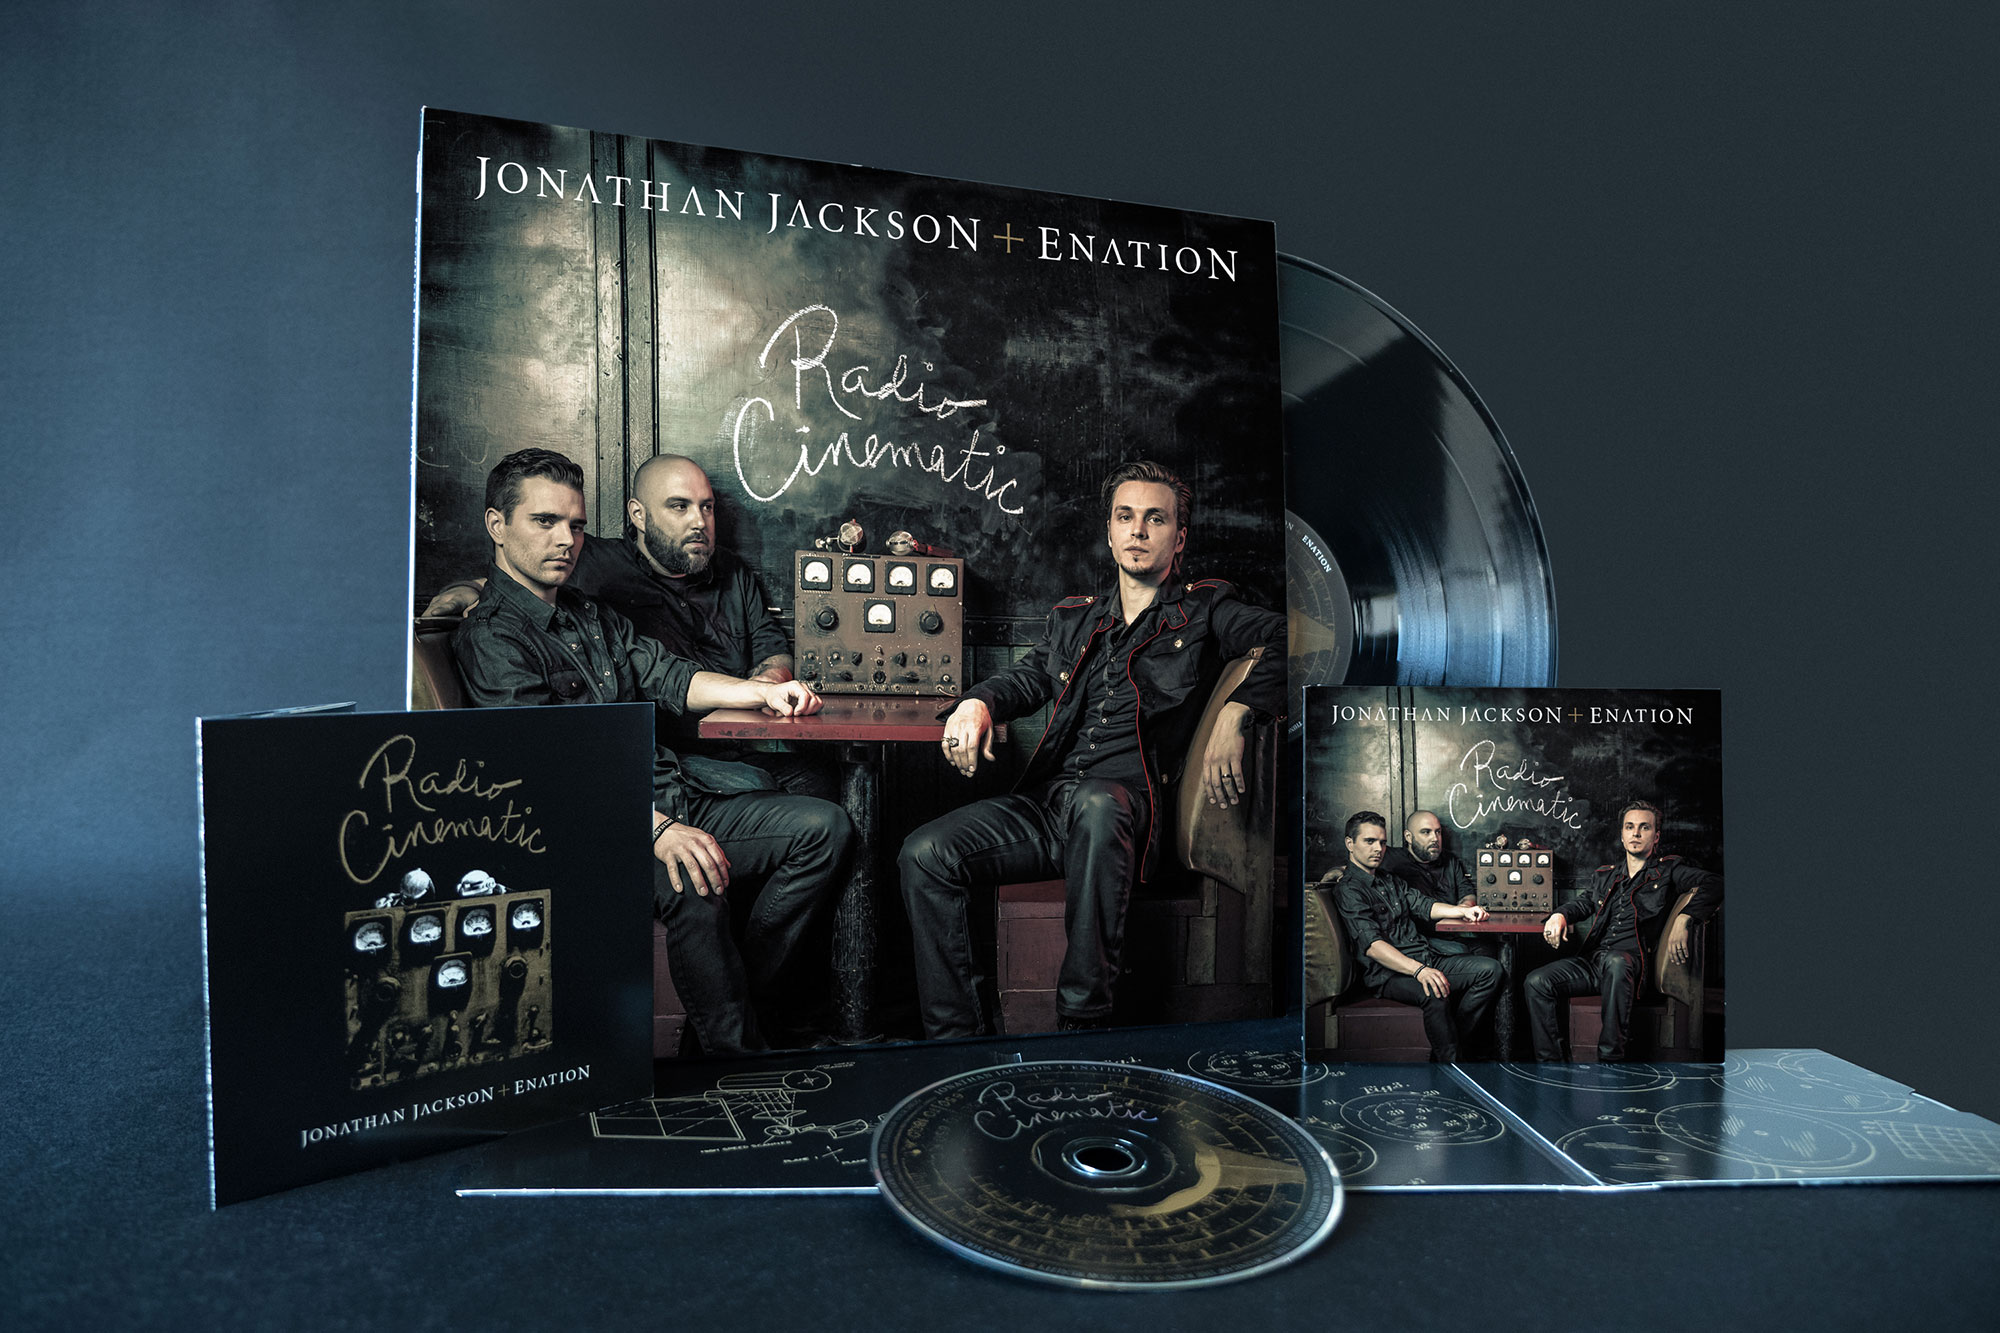 Jonathan Jackson Enation Cover Design